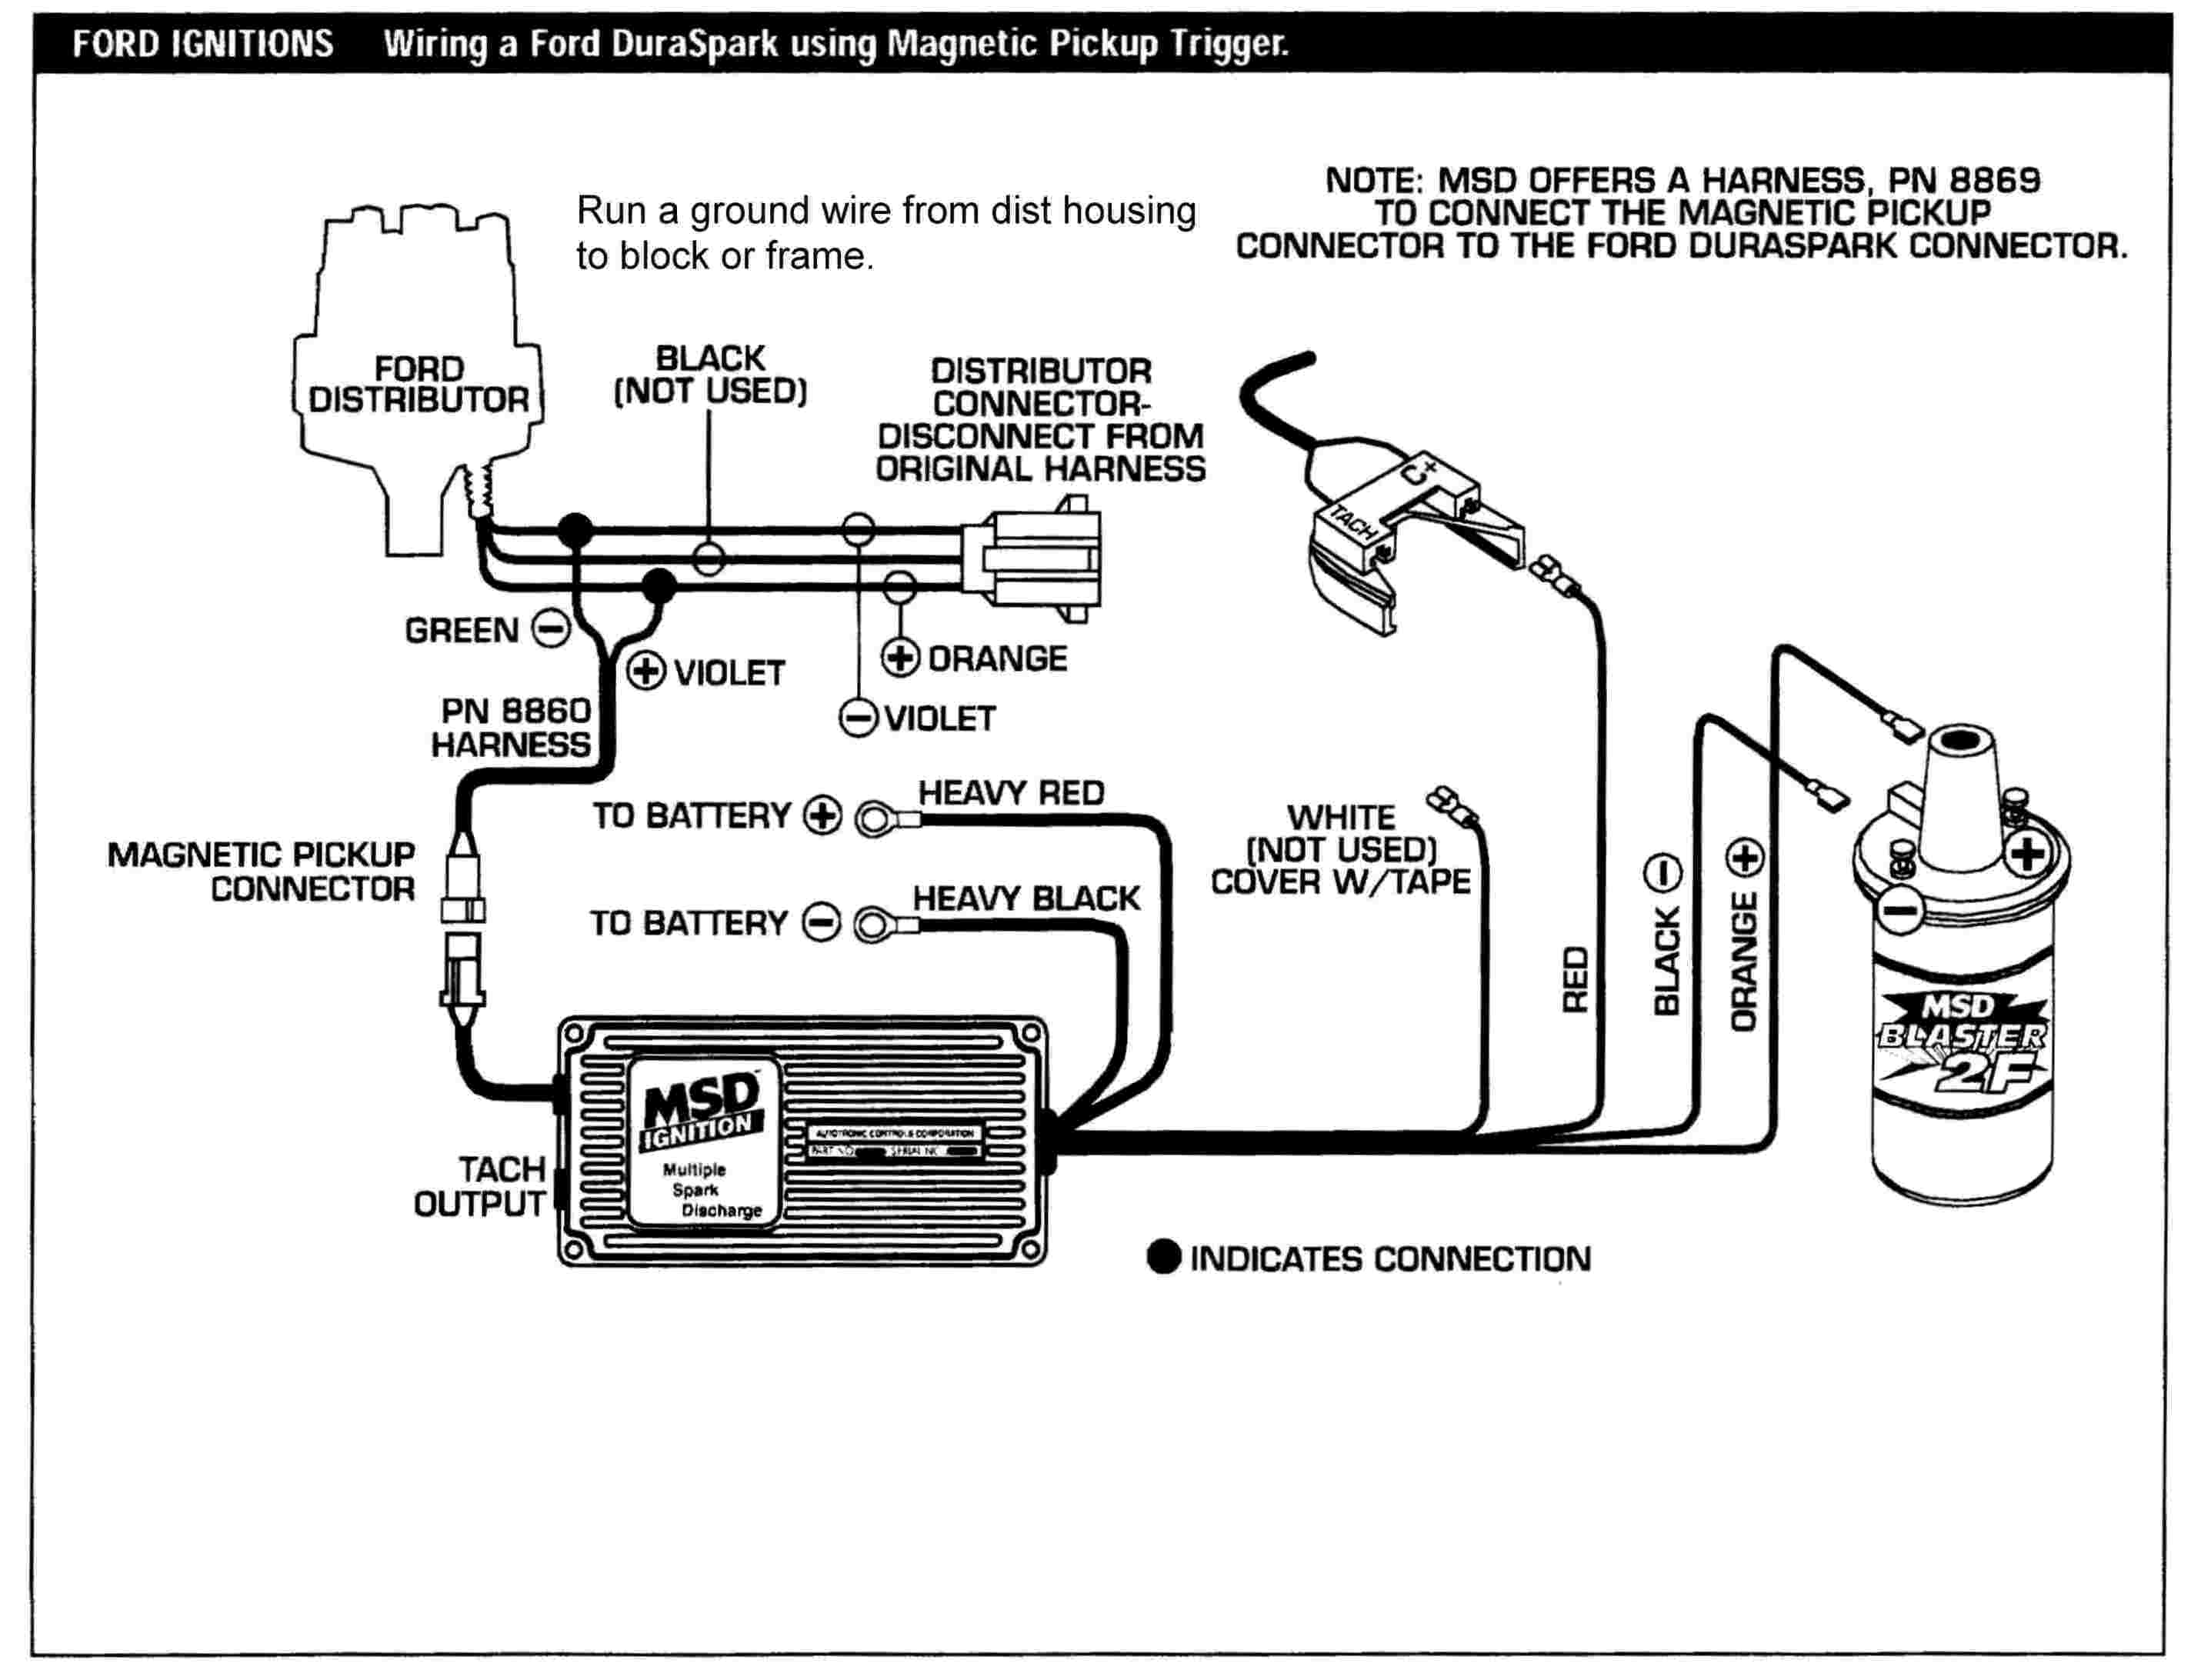 Luxury Pertronix Ignitor Wiring Diagram Gift - Best Images for ...